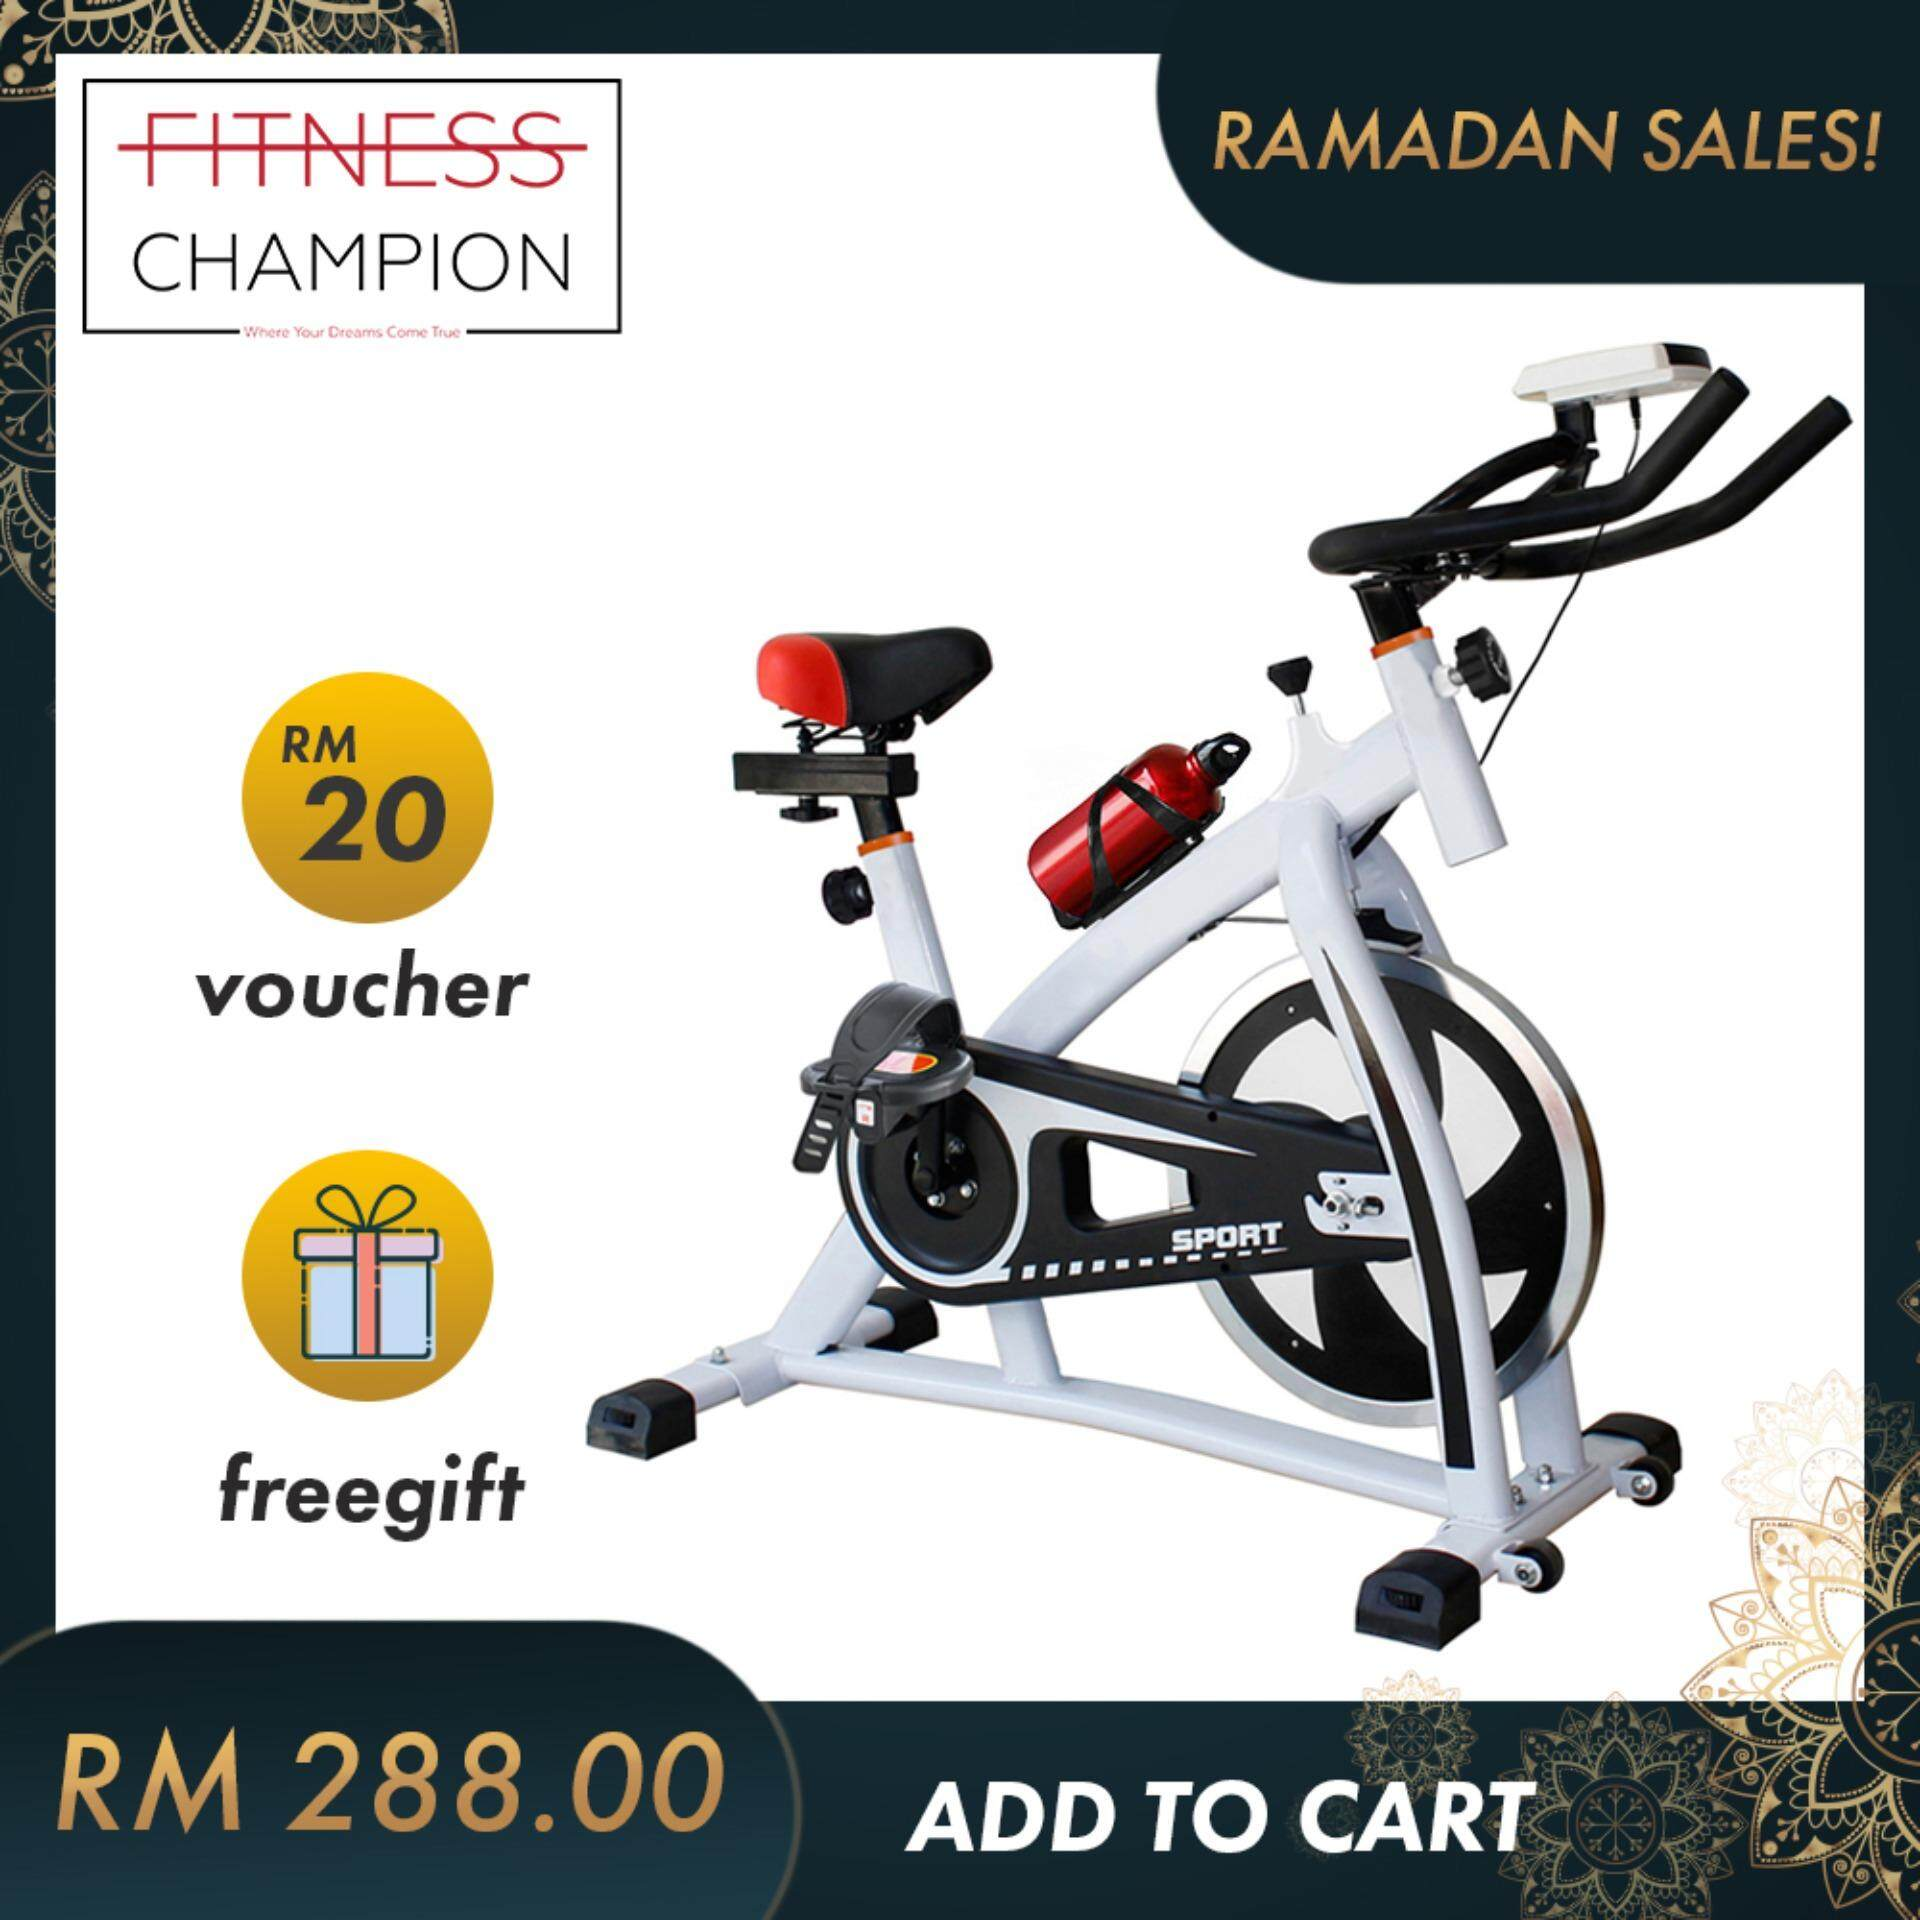 Fitchamp : Indoor Fitness Exercise Bike Pro Bicycle With Water Bottle By Fitness Champion.